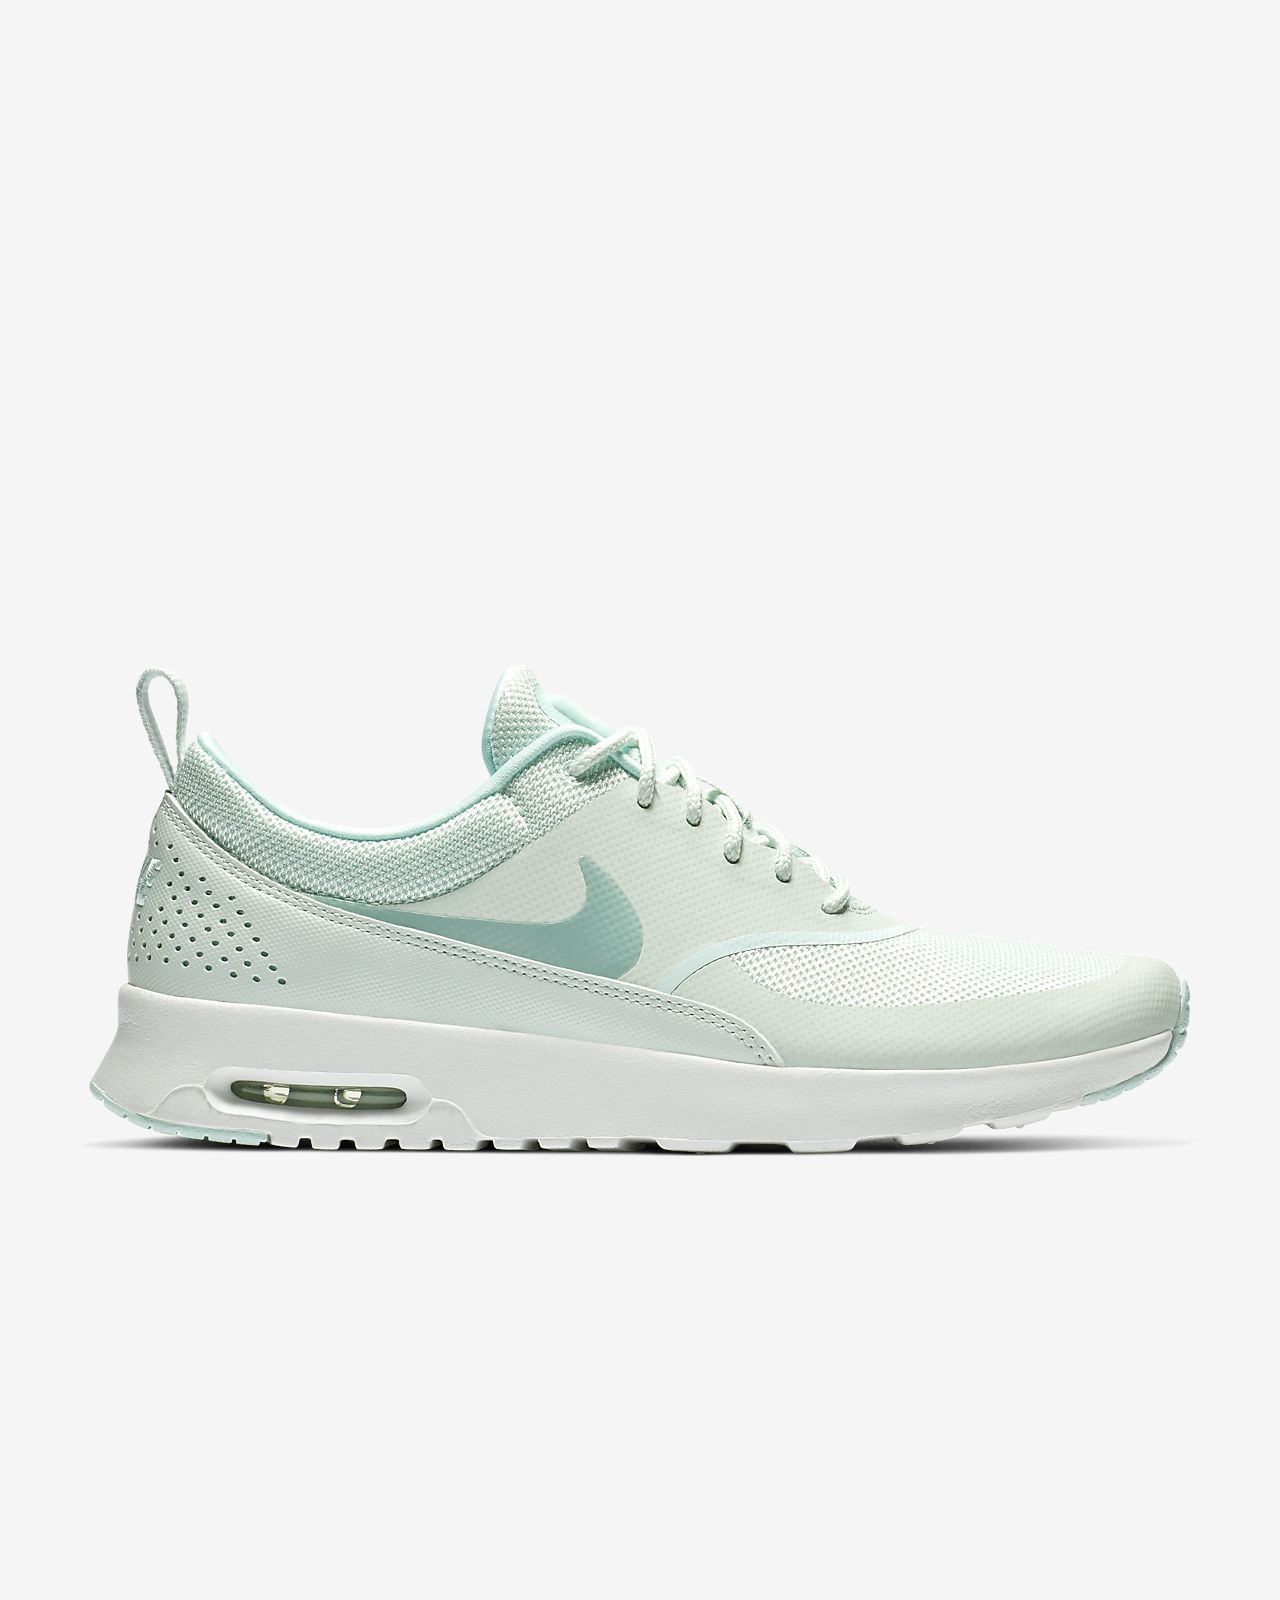 7b46a183946 Nike Air Max Thea Women s Shoe. Nike.com GB